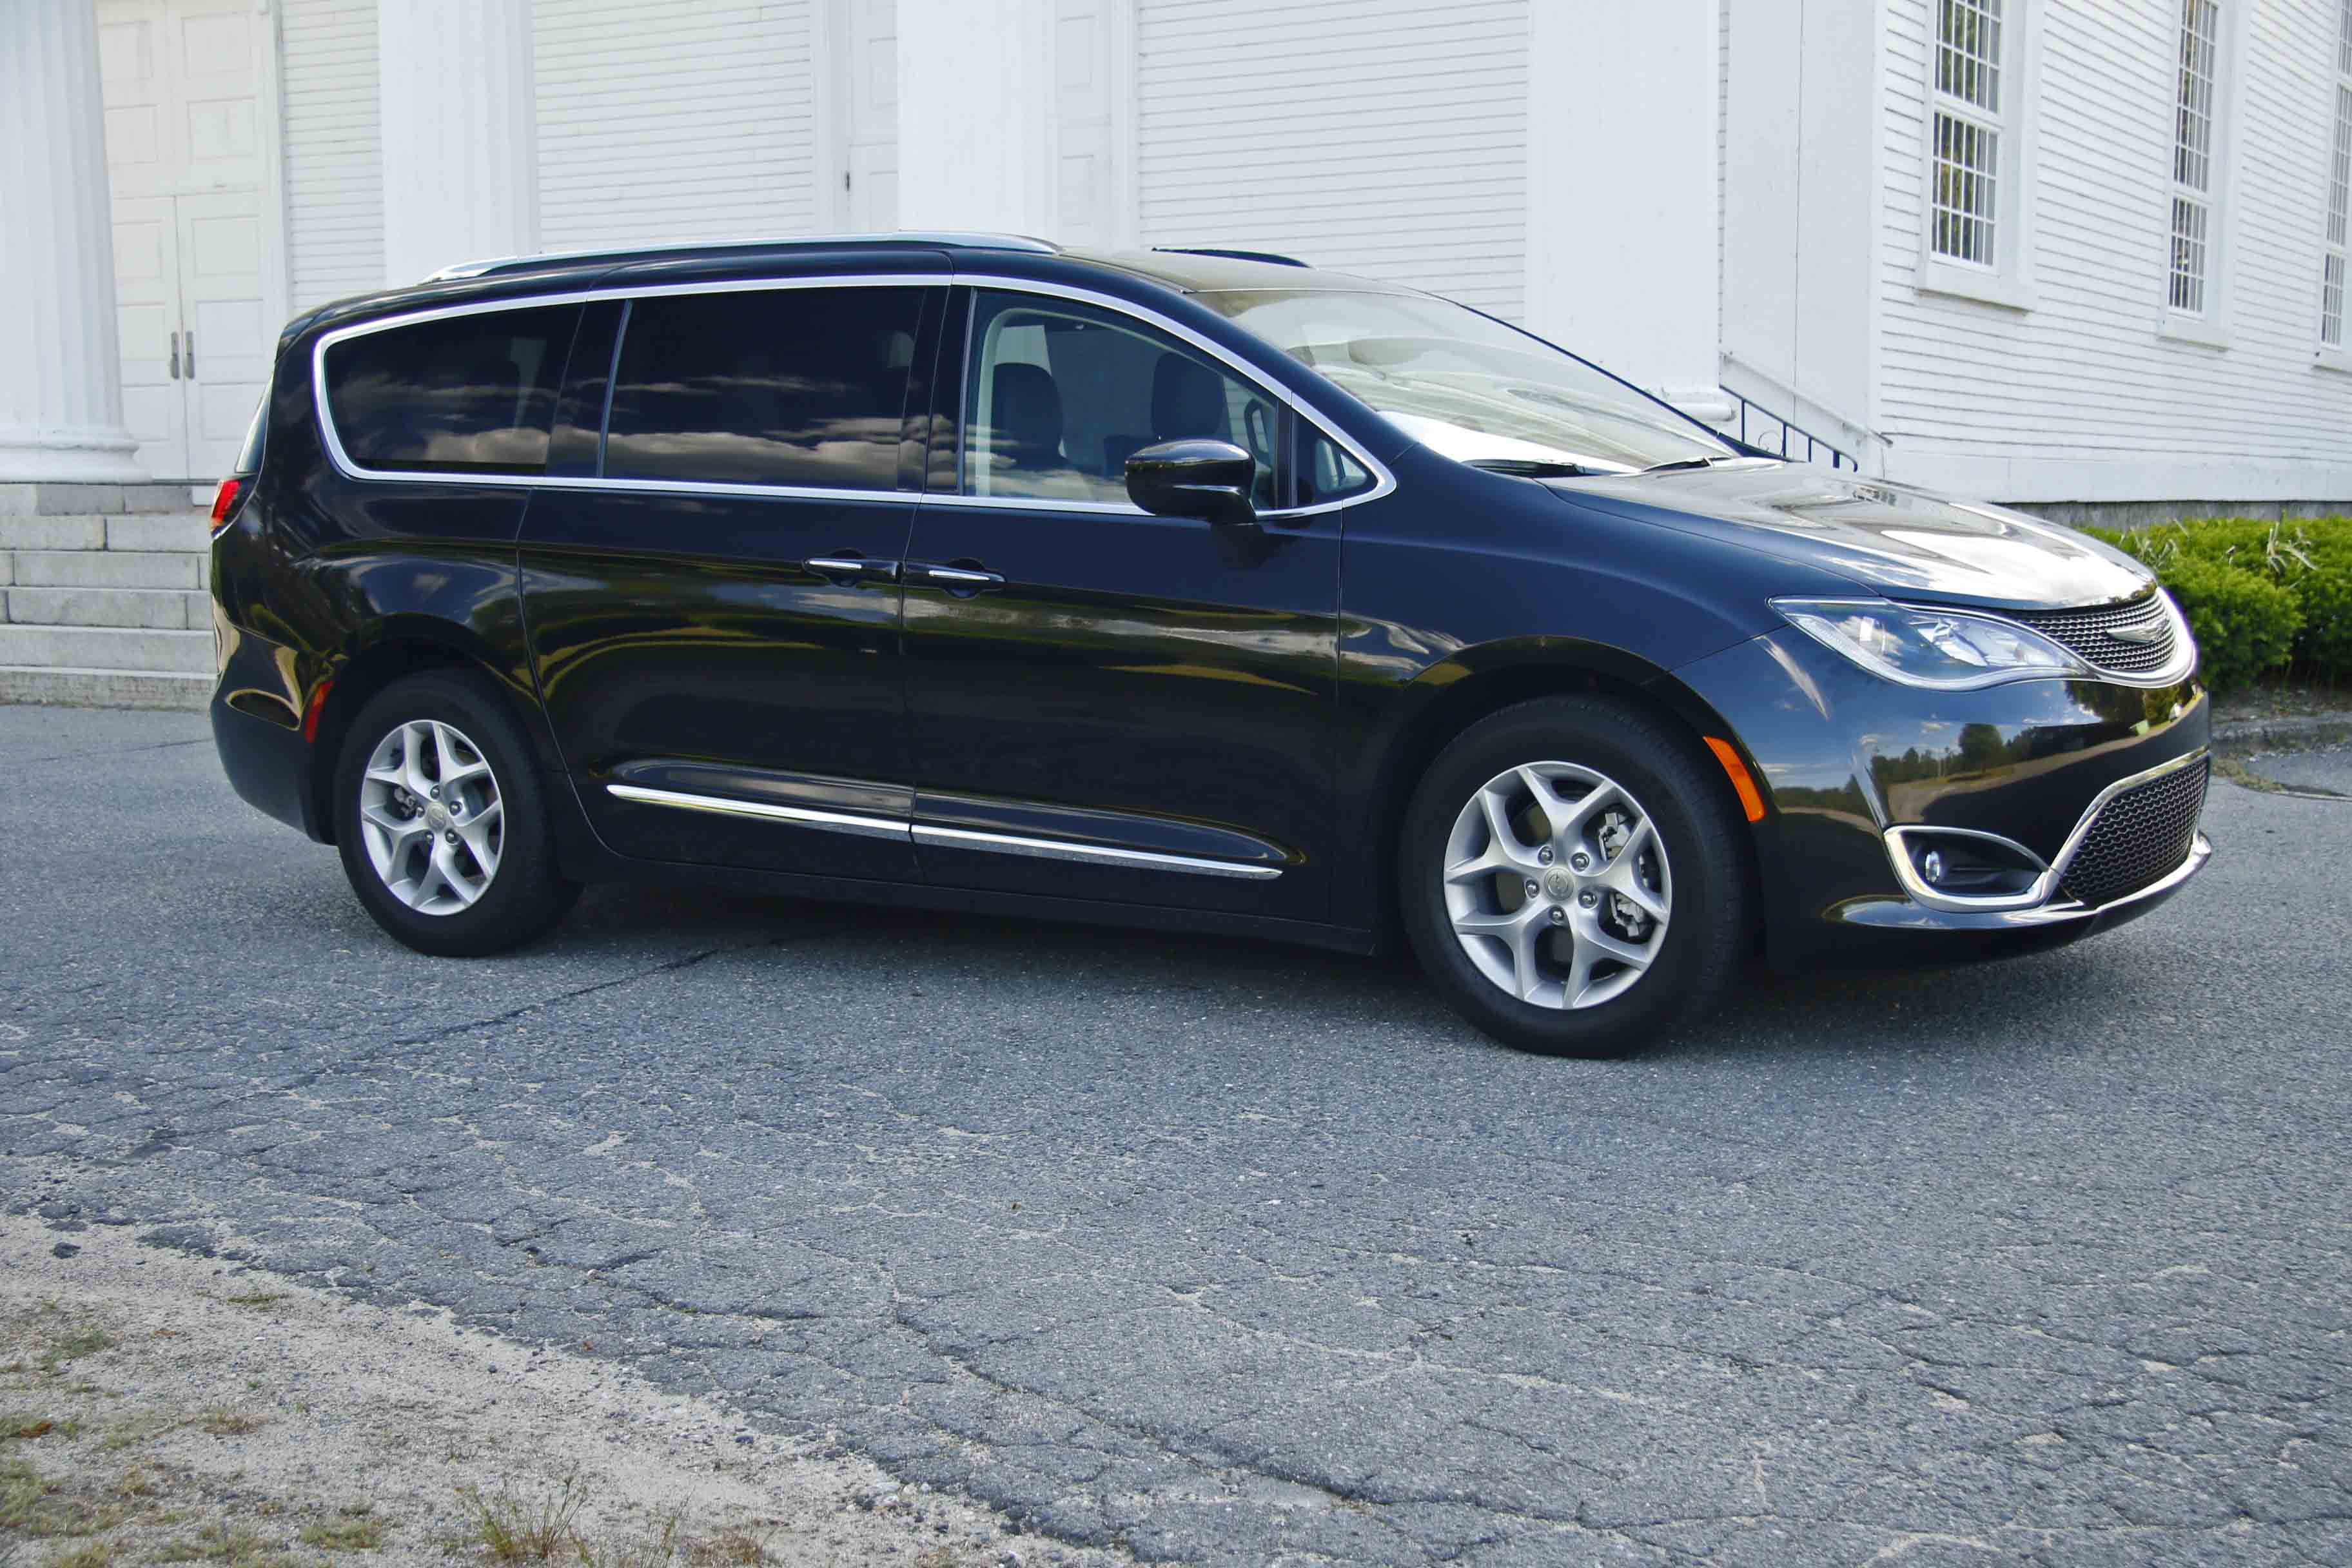 THINKING INSIDE THE BOX: Chrysler's Pacifica is another step forward in the evolution of the minivan.